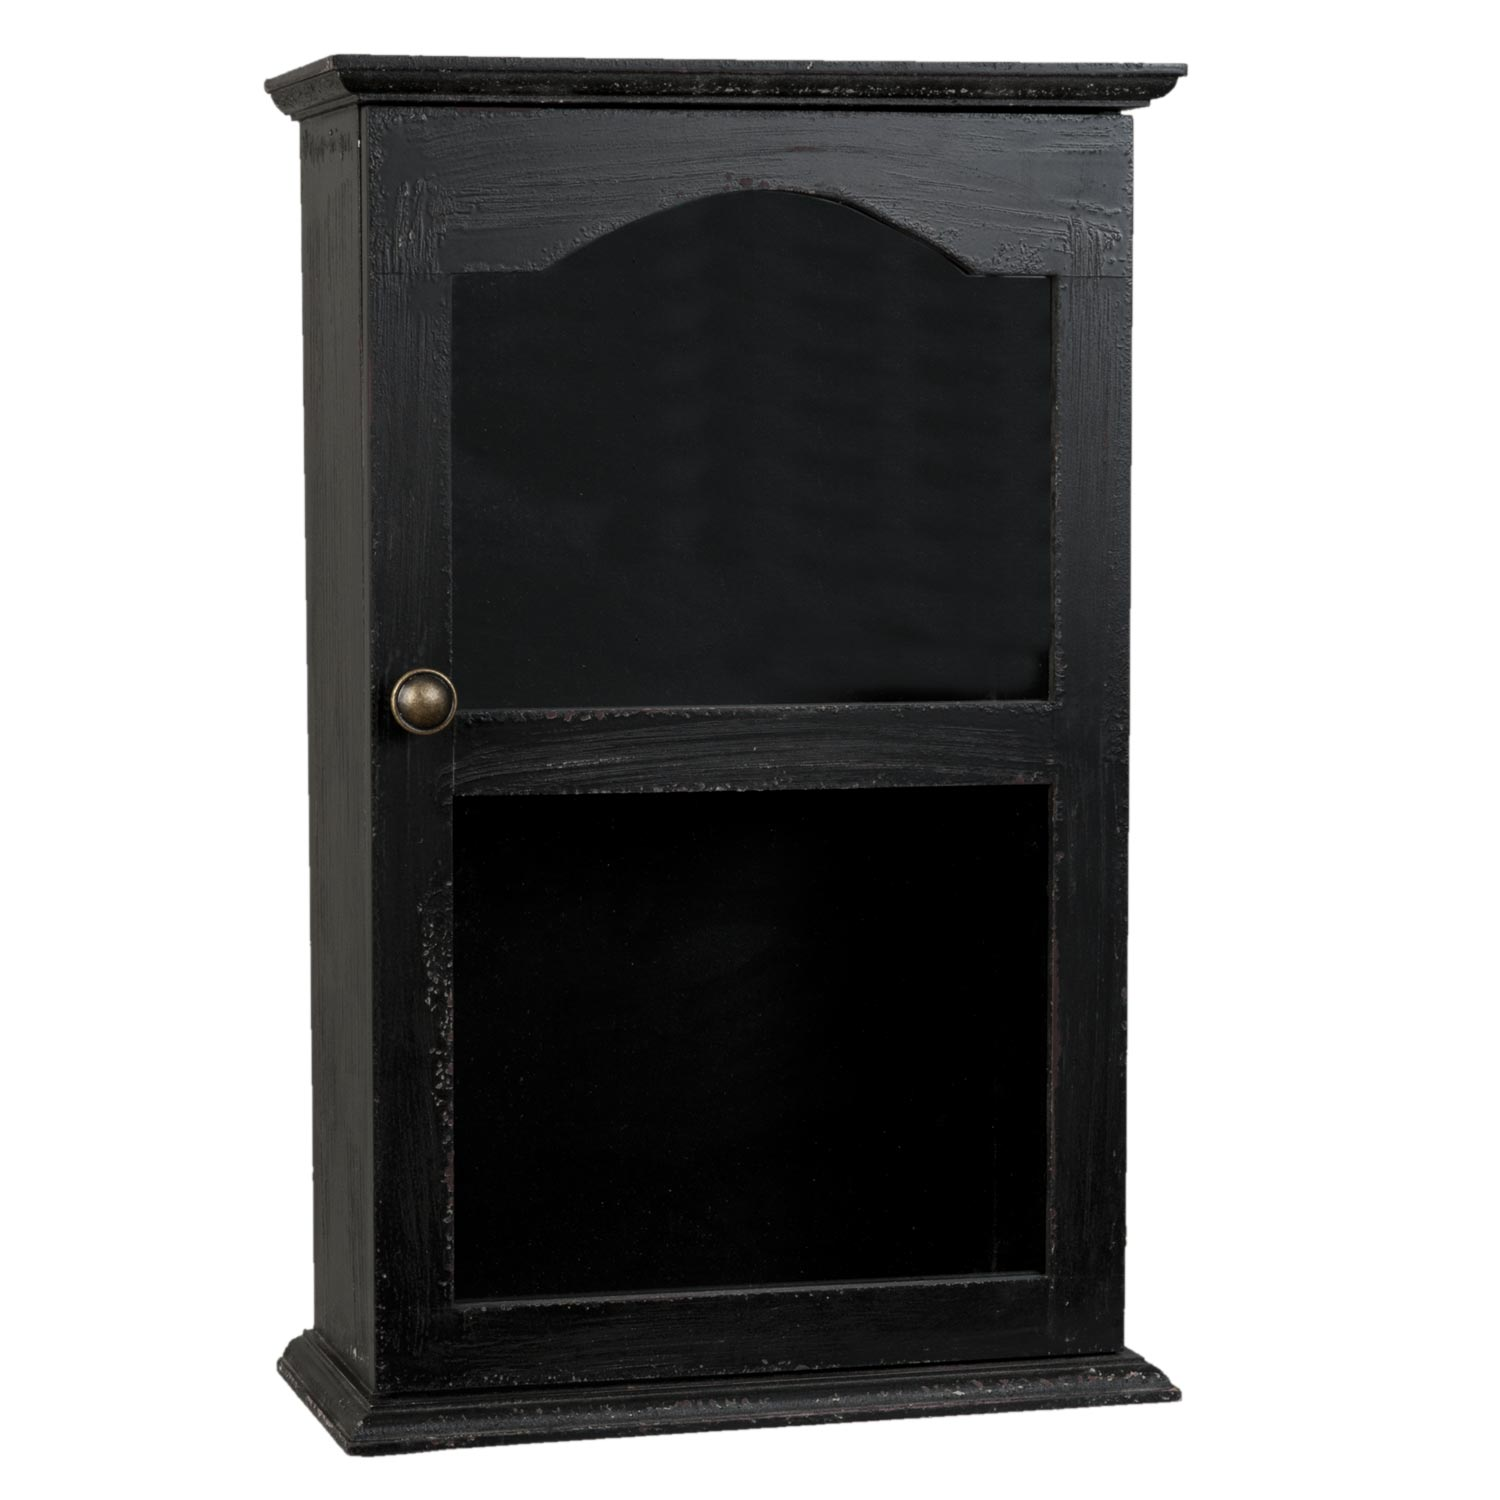 clayre eef 6h0772 schrank vitrine holzschrank schwarz ca 32 x 15 x 50 cm. Black Bedroom Furniture Sets. Home Design Ideas